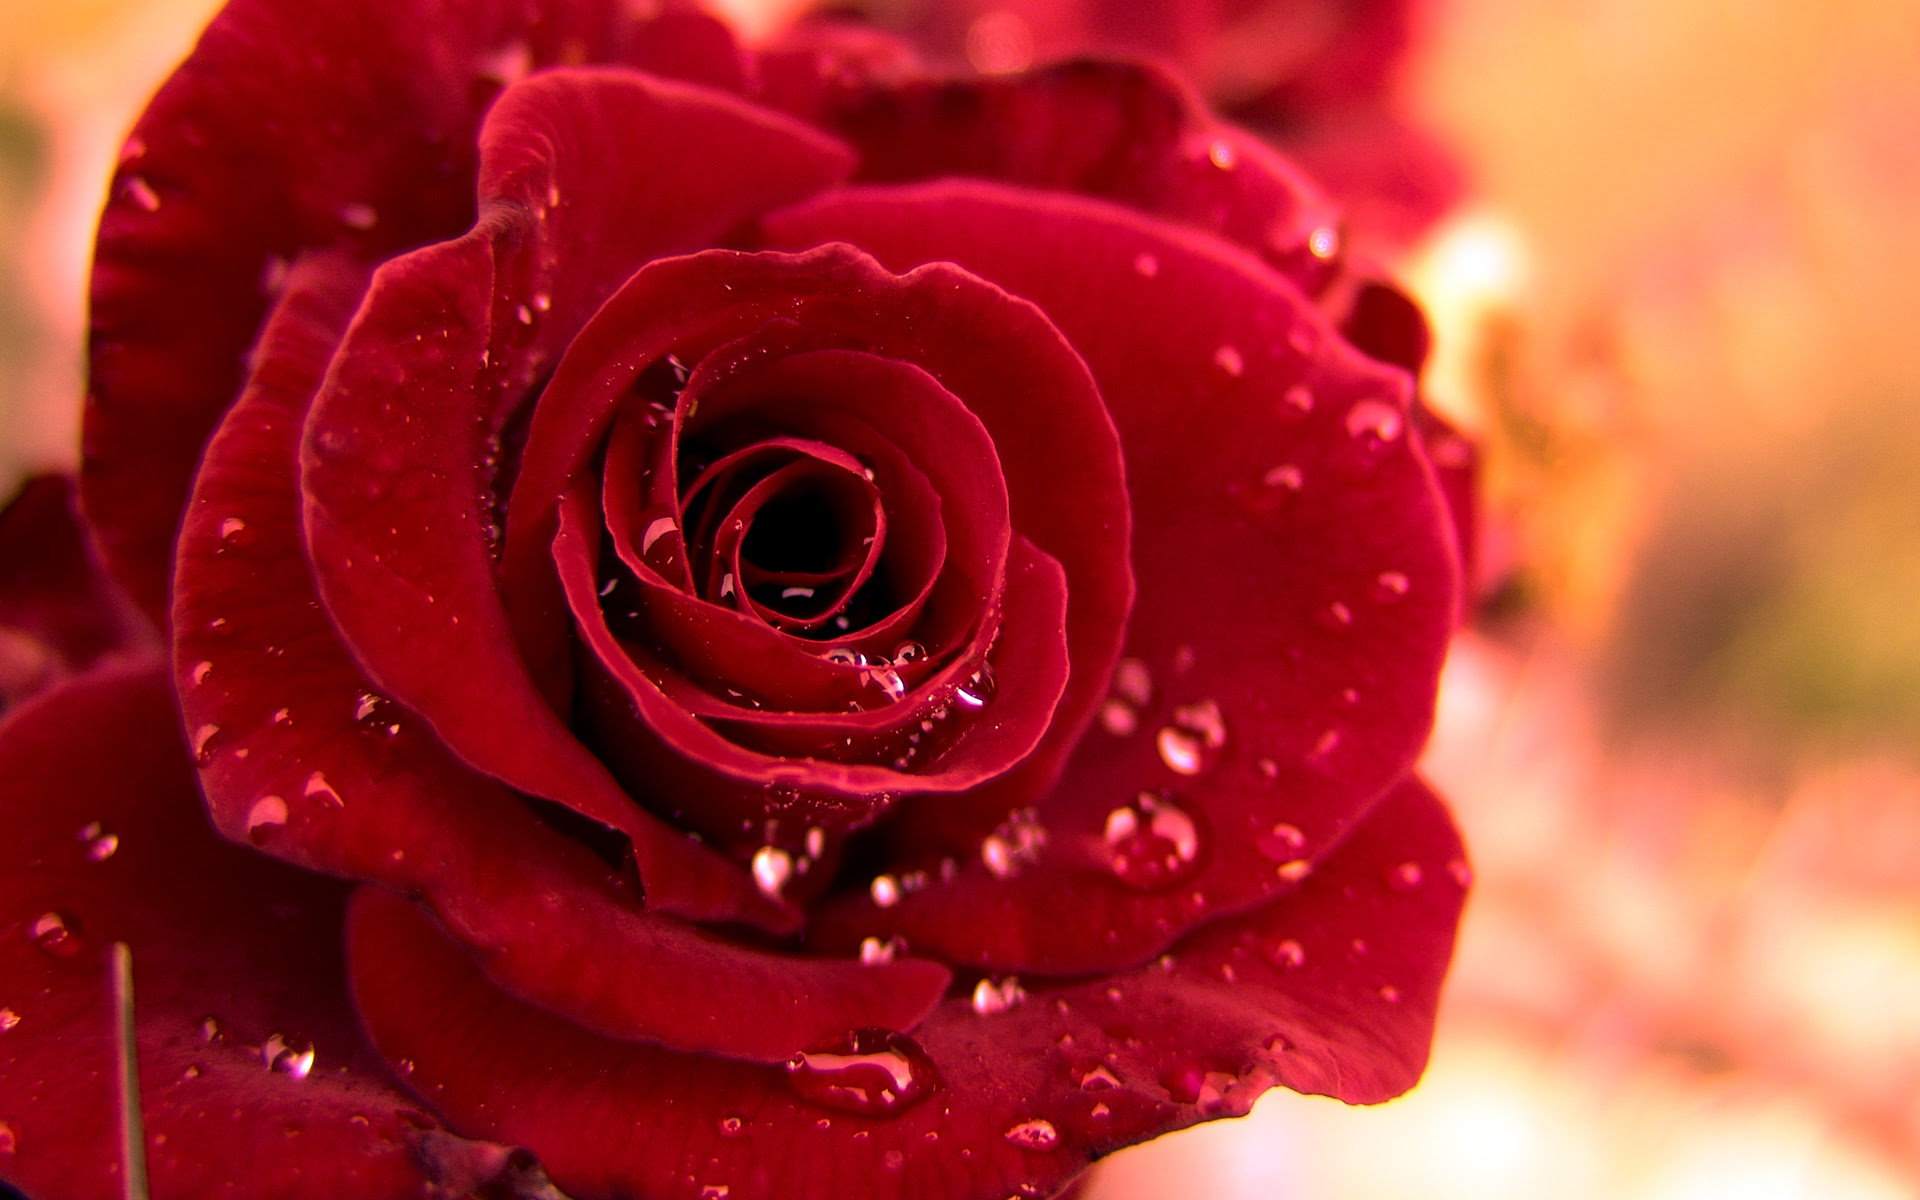 Red Roses Wallpapers Hd A5 Hd Desktop Wallpapers 4k Hd